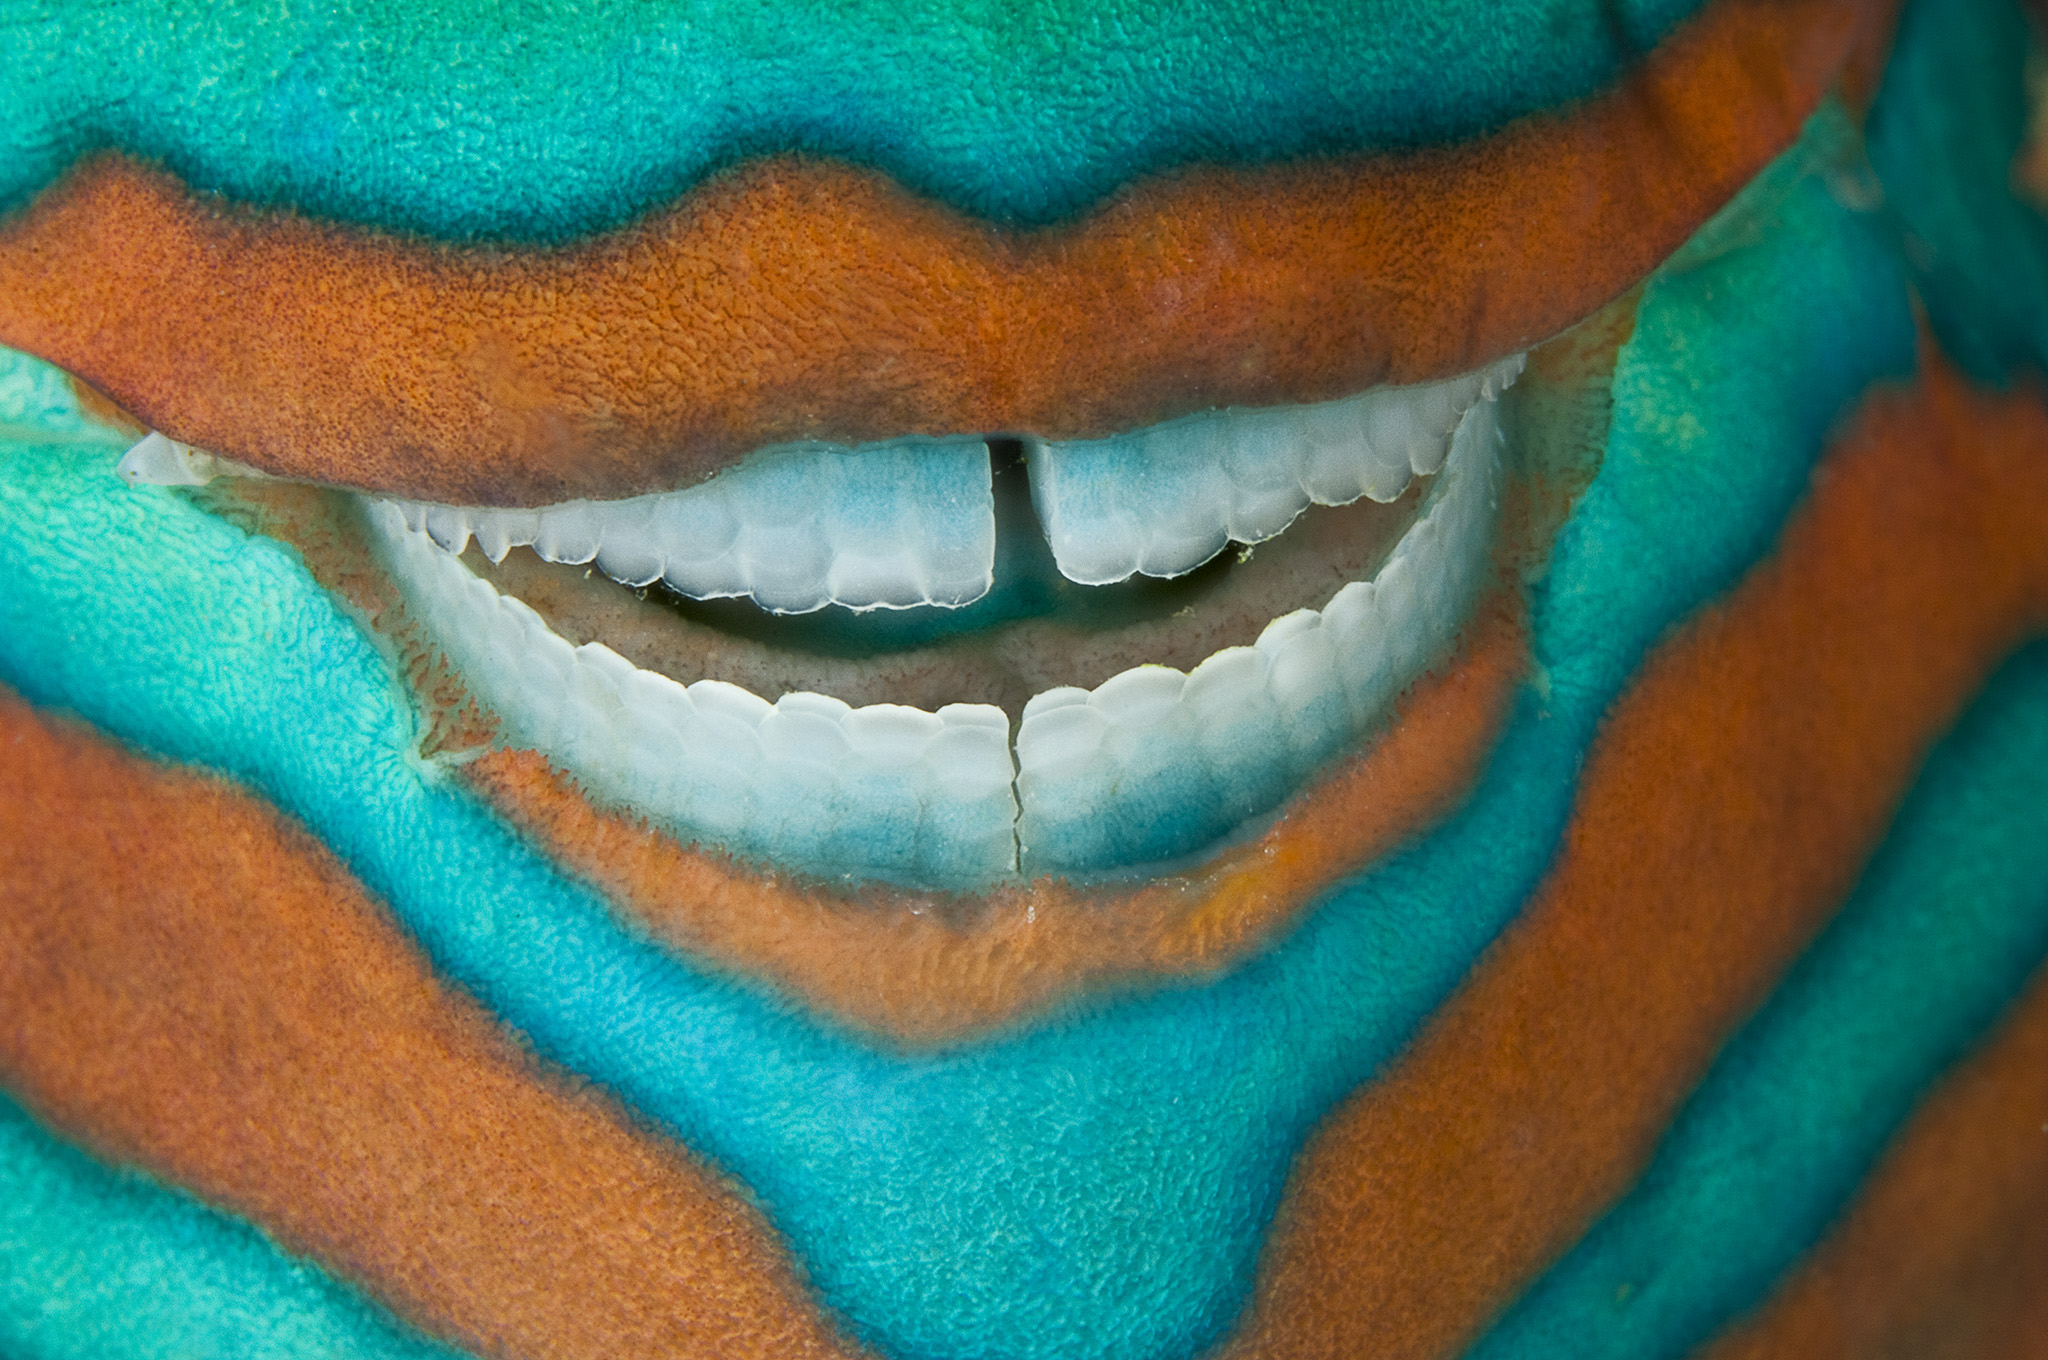 A sleeping parrotfish appears to smile with near perfect teeth, Heron Island Great Barrier Reef Australia